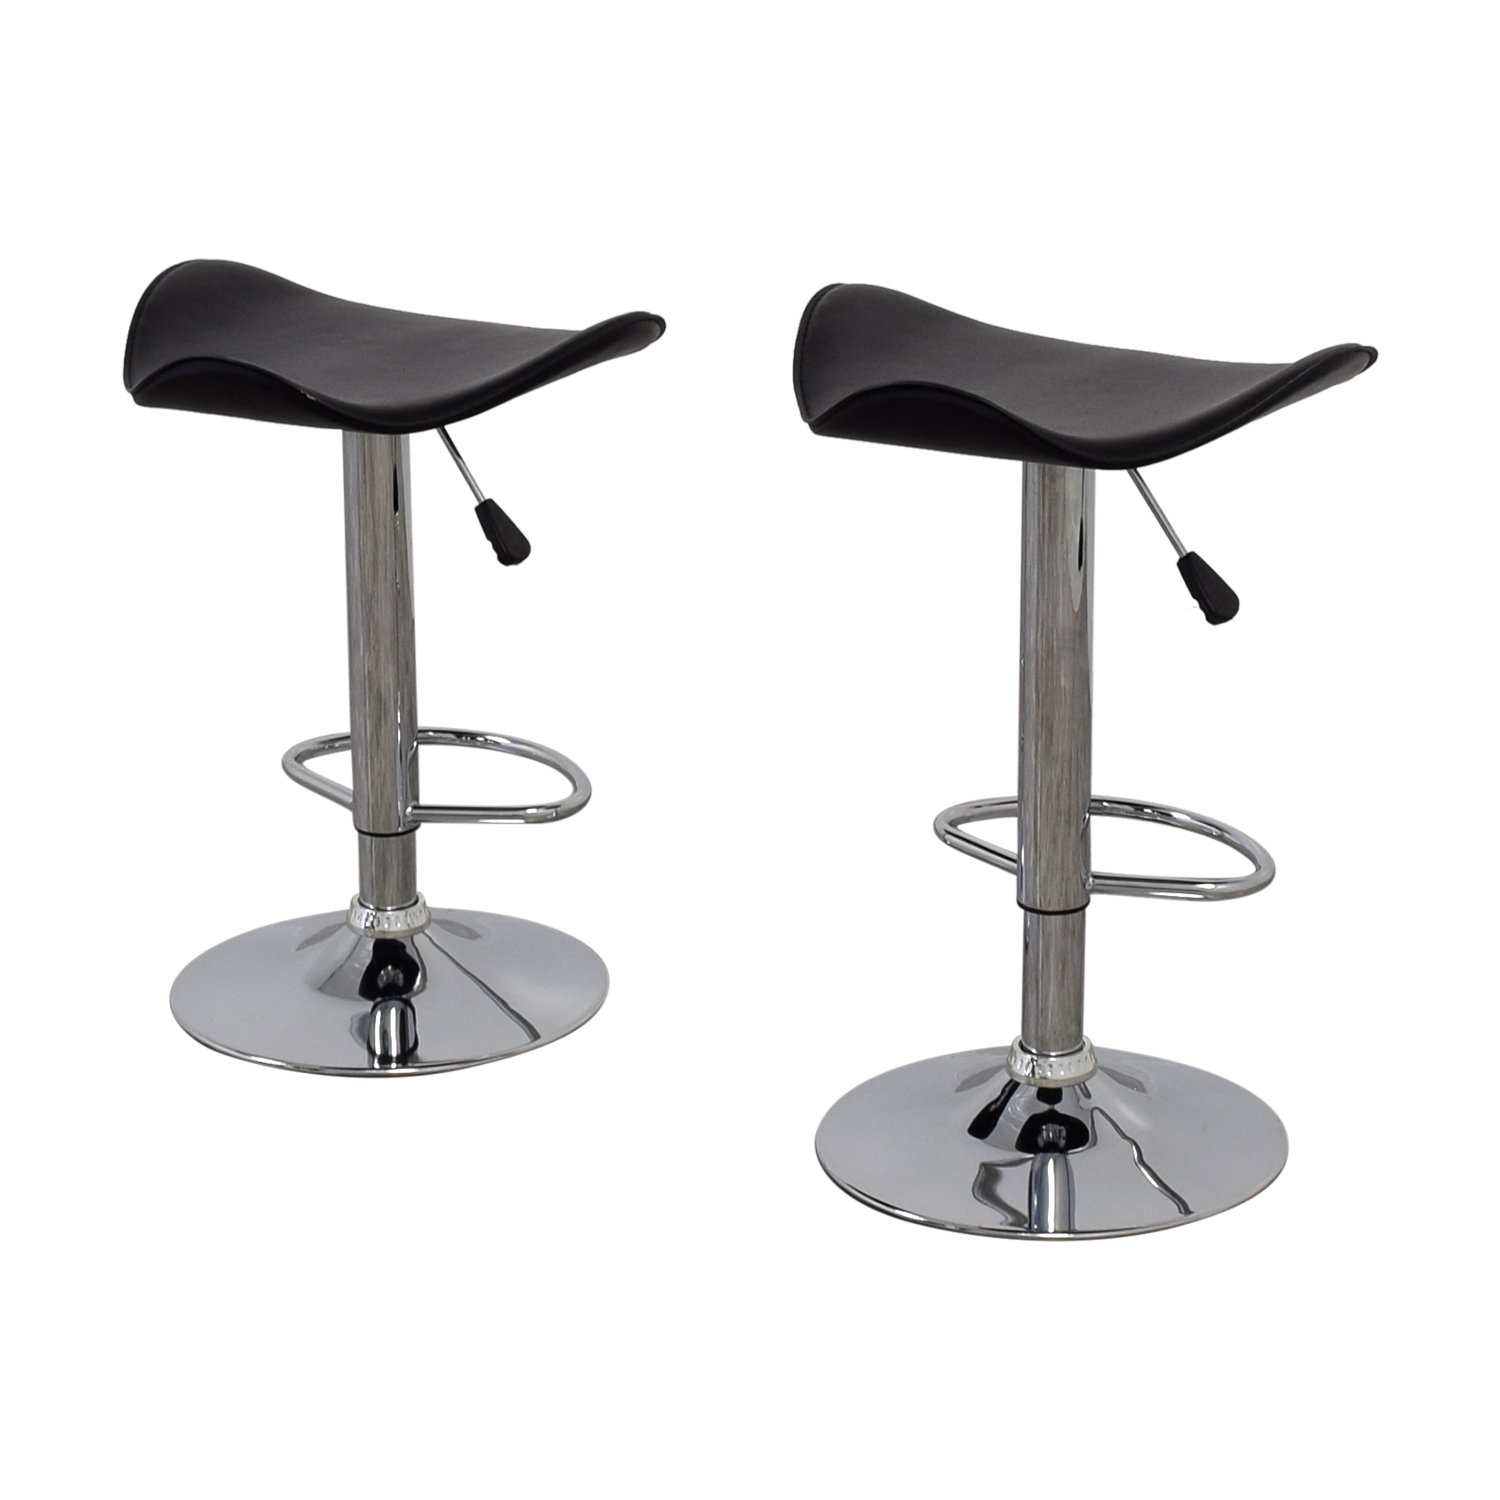 Tremendous 71 Off Black Leather And Chrome Adjustable Bar Stools Chairs Ncnpc Chair Design For Home Ncnpcorg